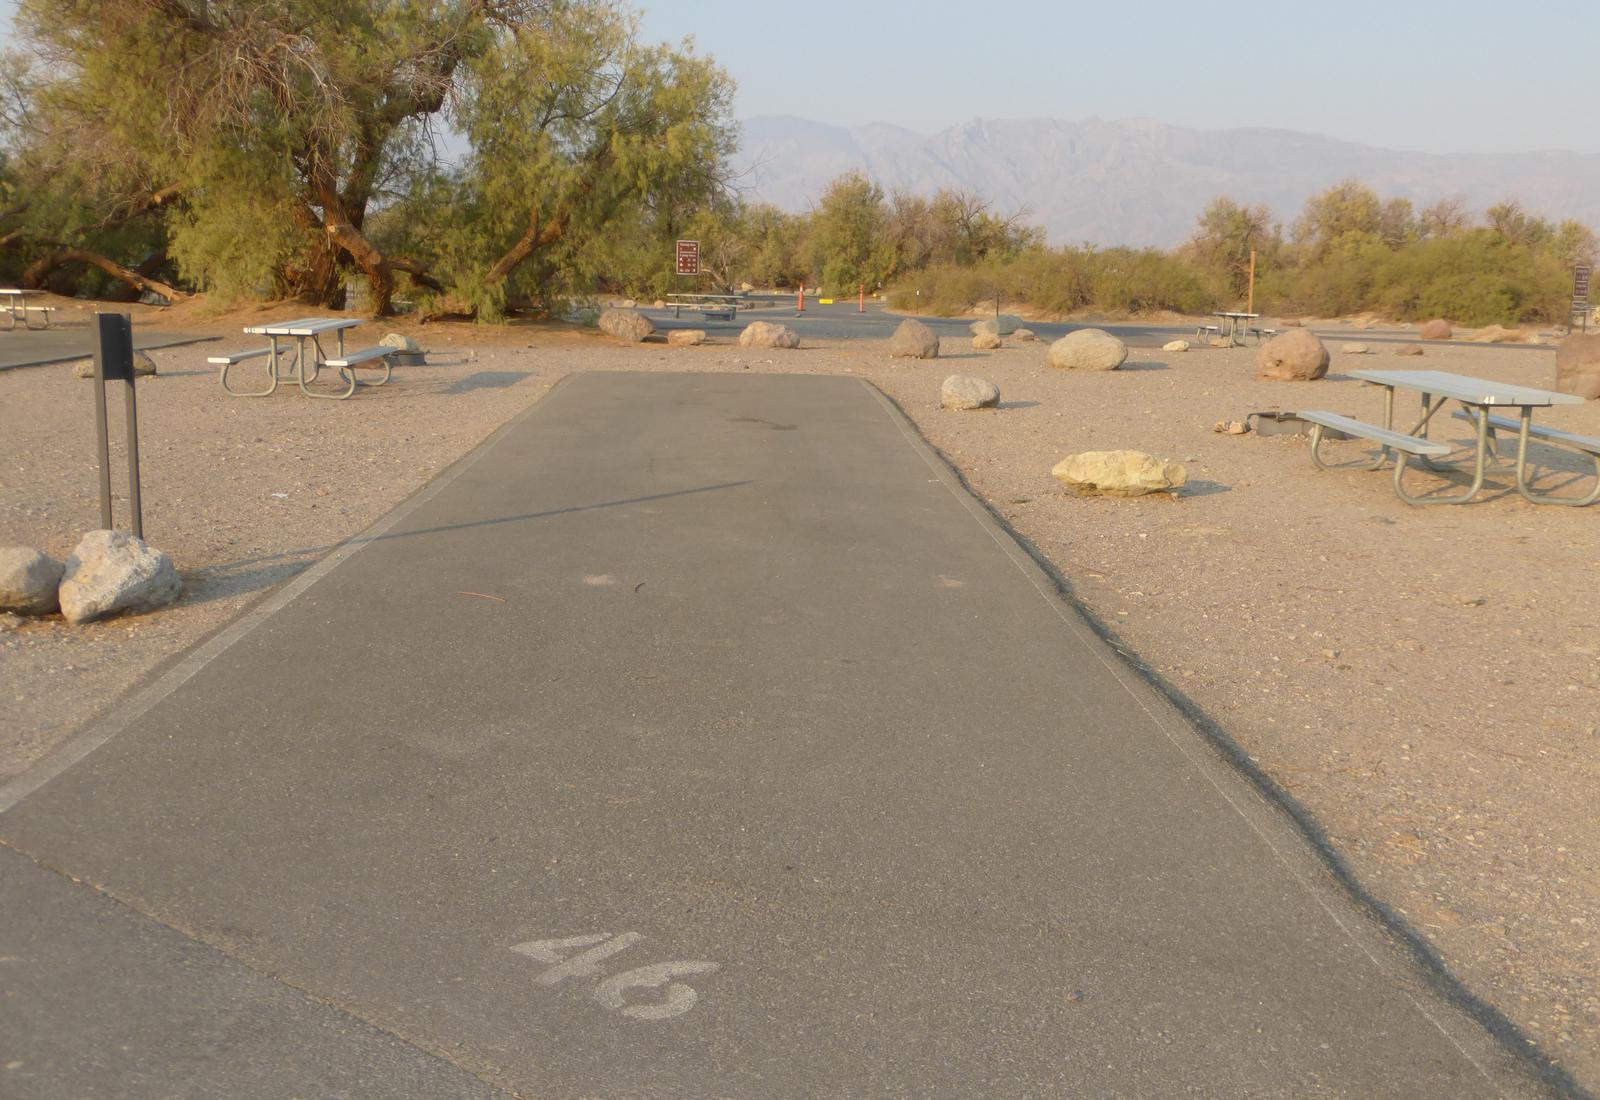 Furnace Creek Campground standard nonelectric site #46 with picnic table and fire ring.